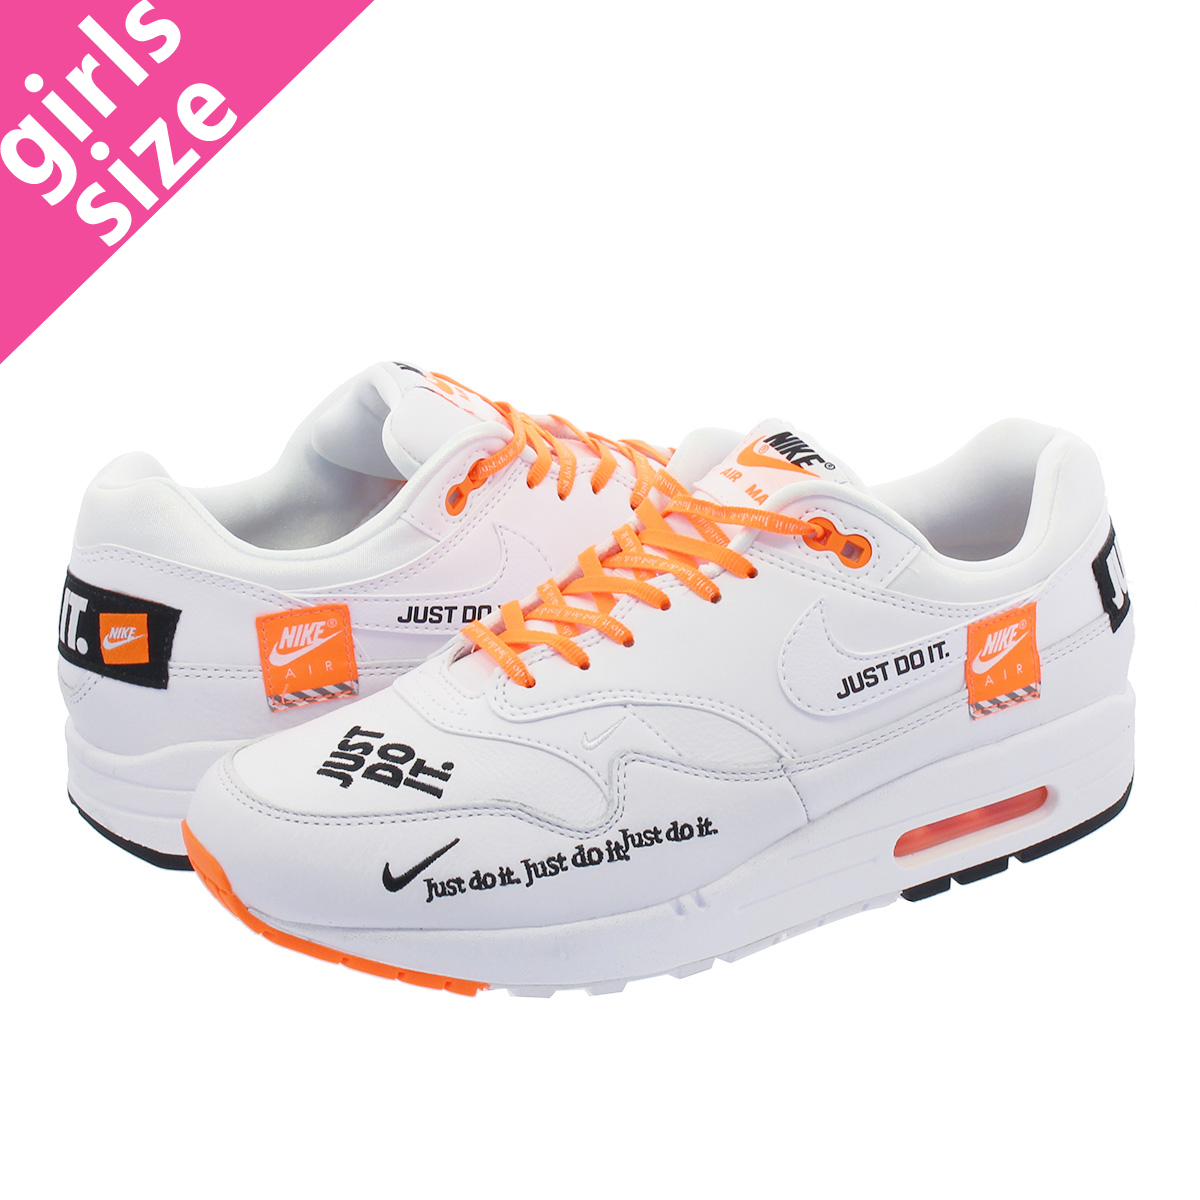 WMNS LOW SHOE AIR MAX 1 LX WHITE BLACK TOTAL ORANGE